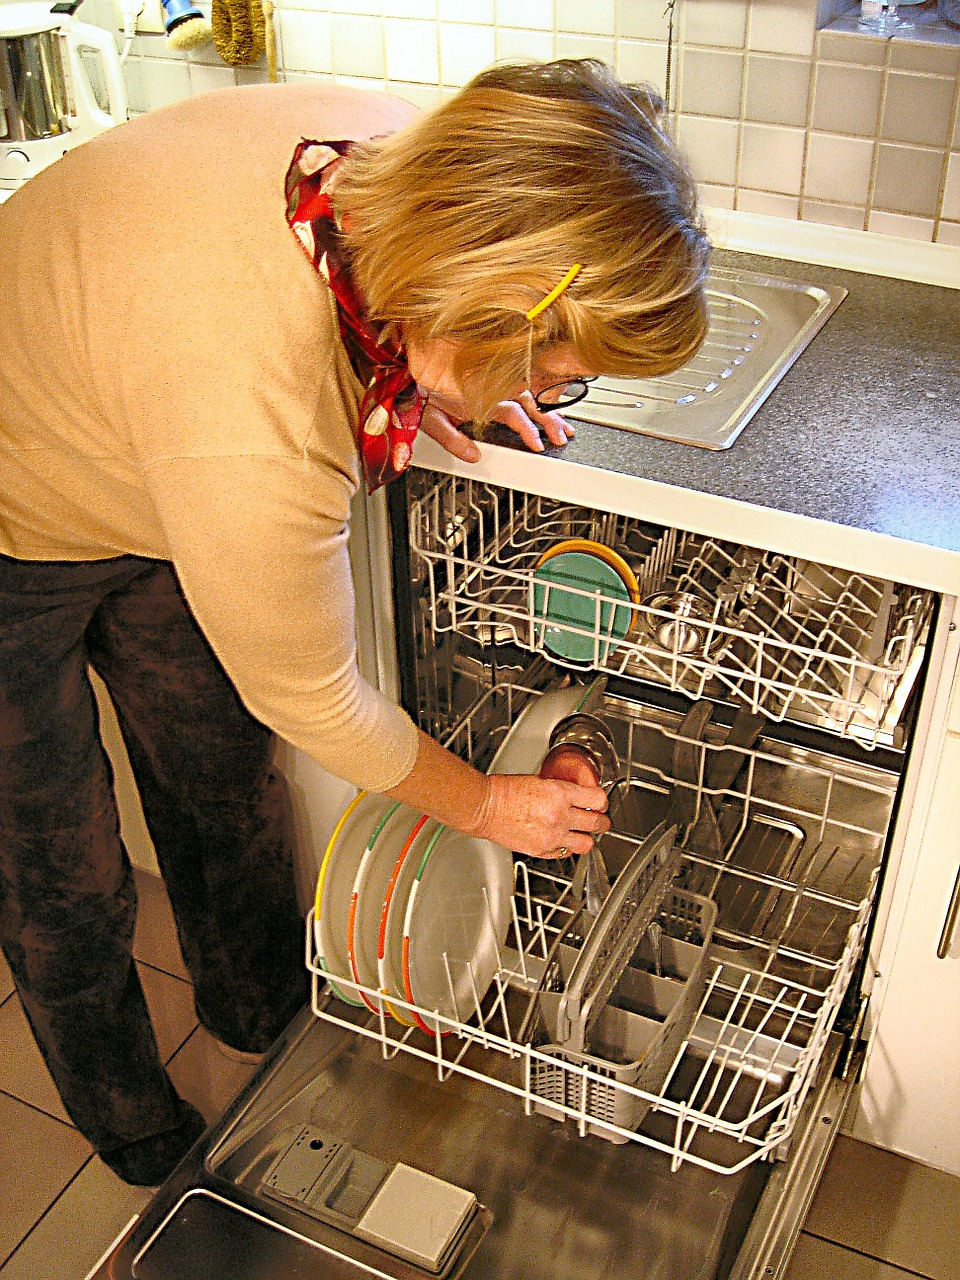 lady opening dishwasher